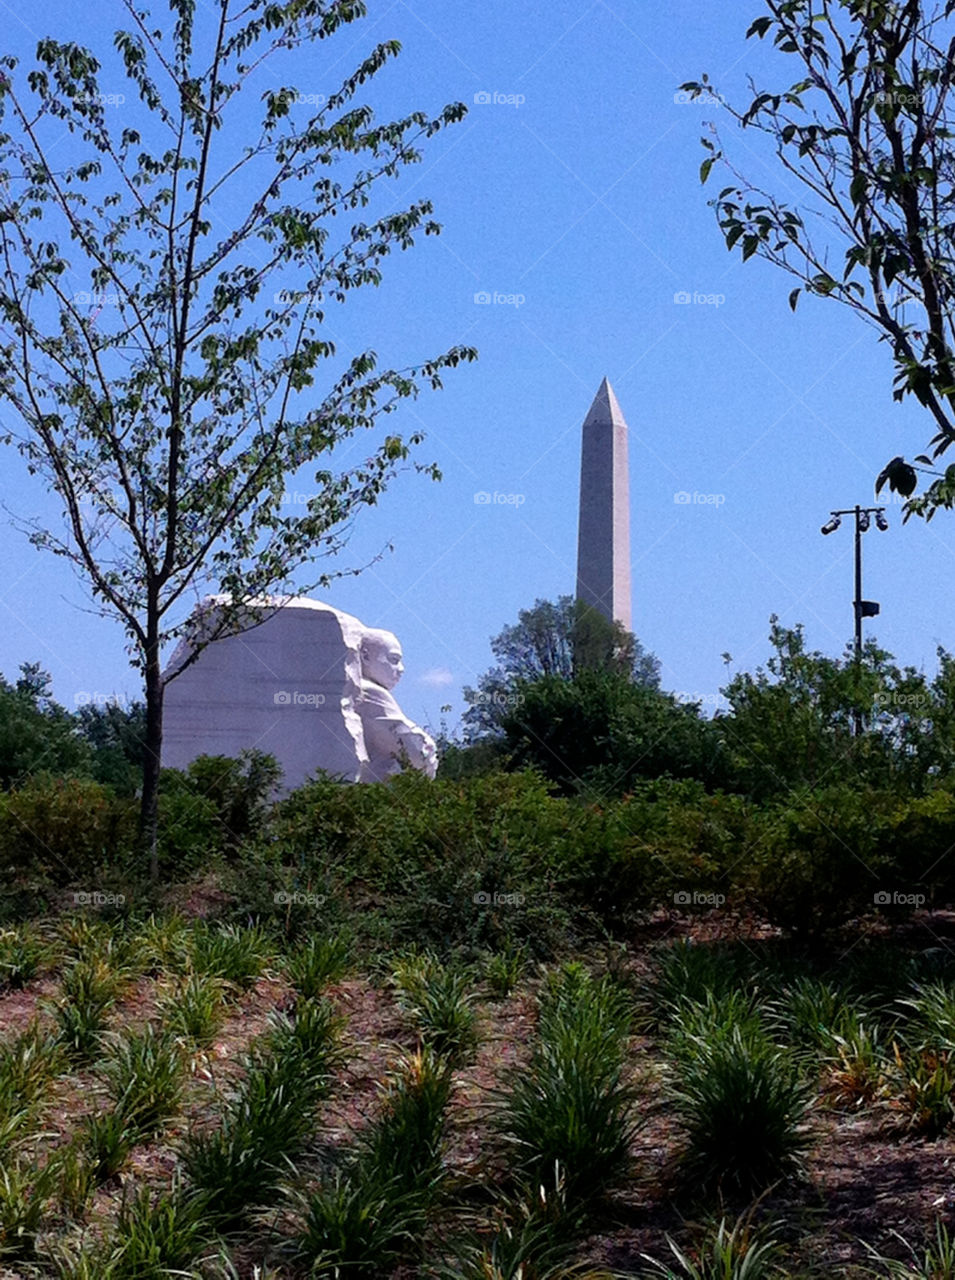 The Washington Monument with the MLK Memorial in the foreground.